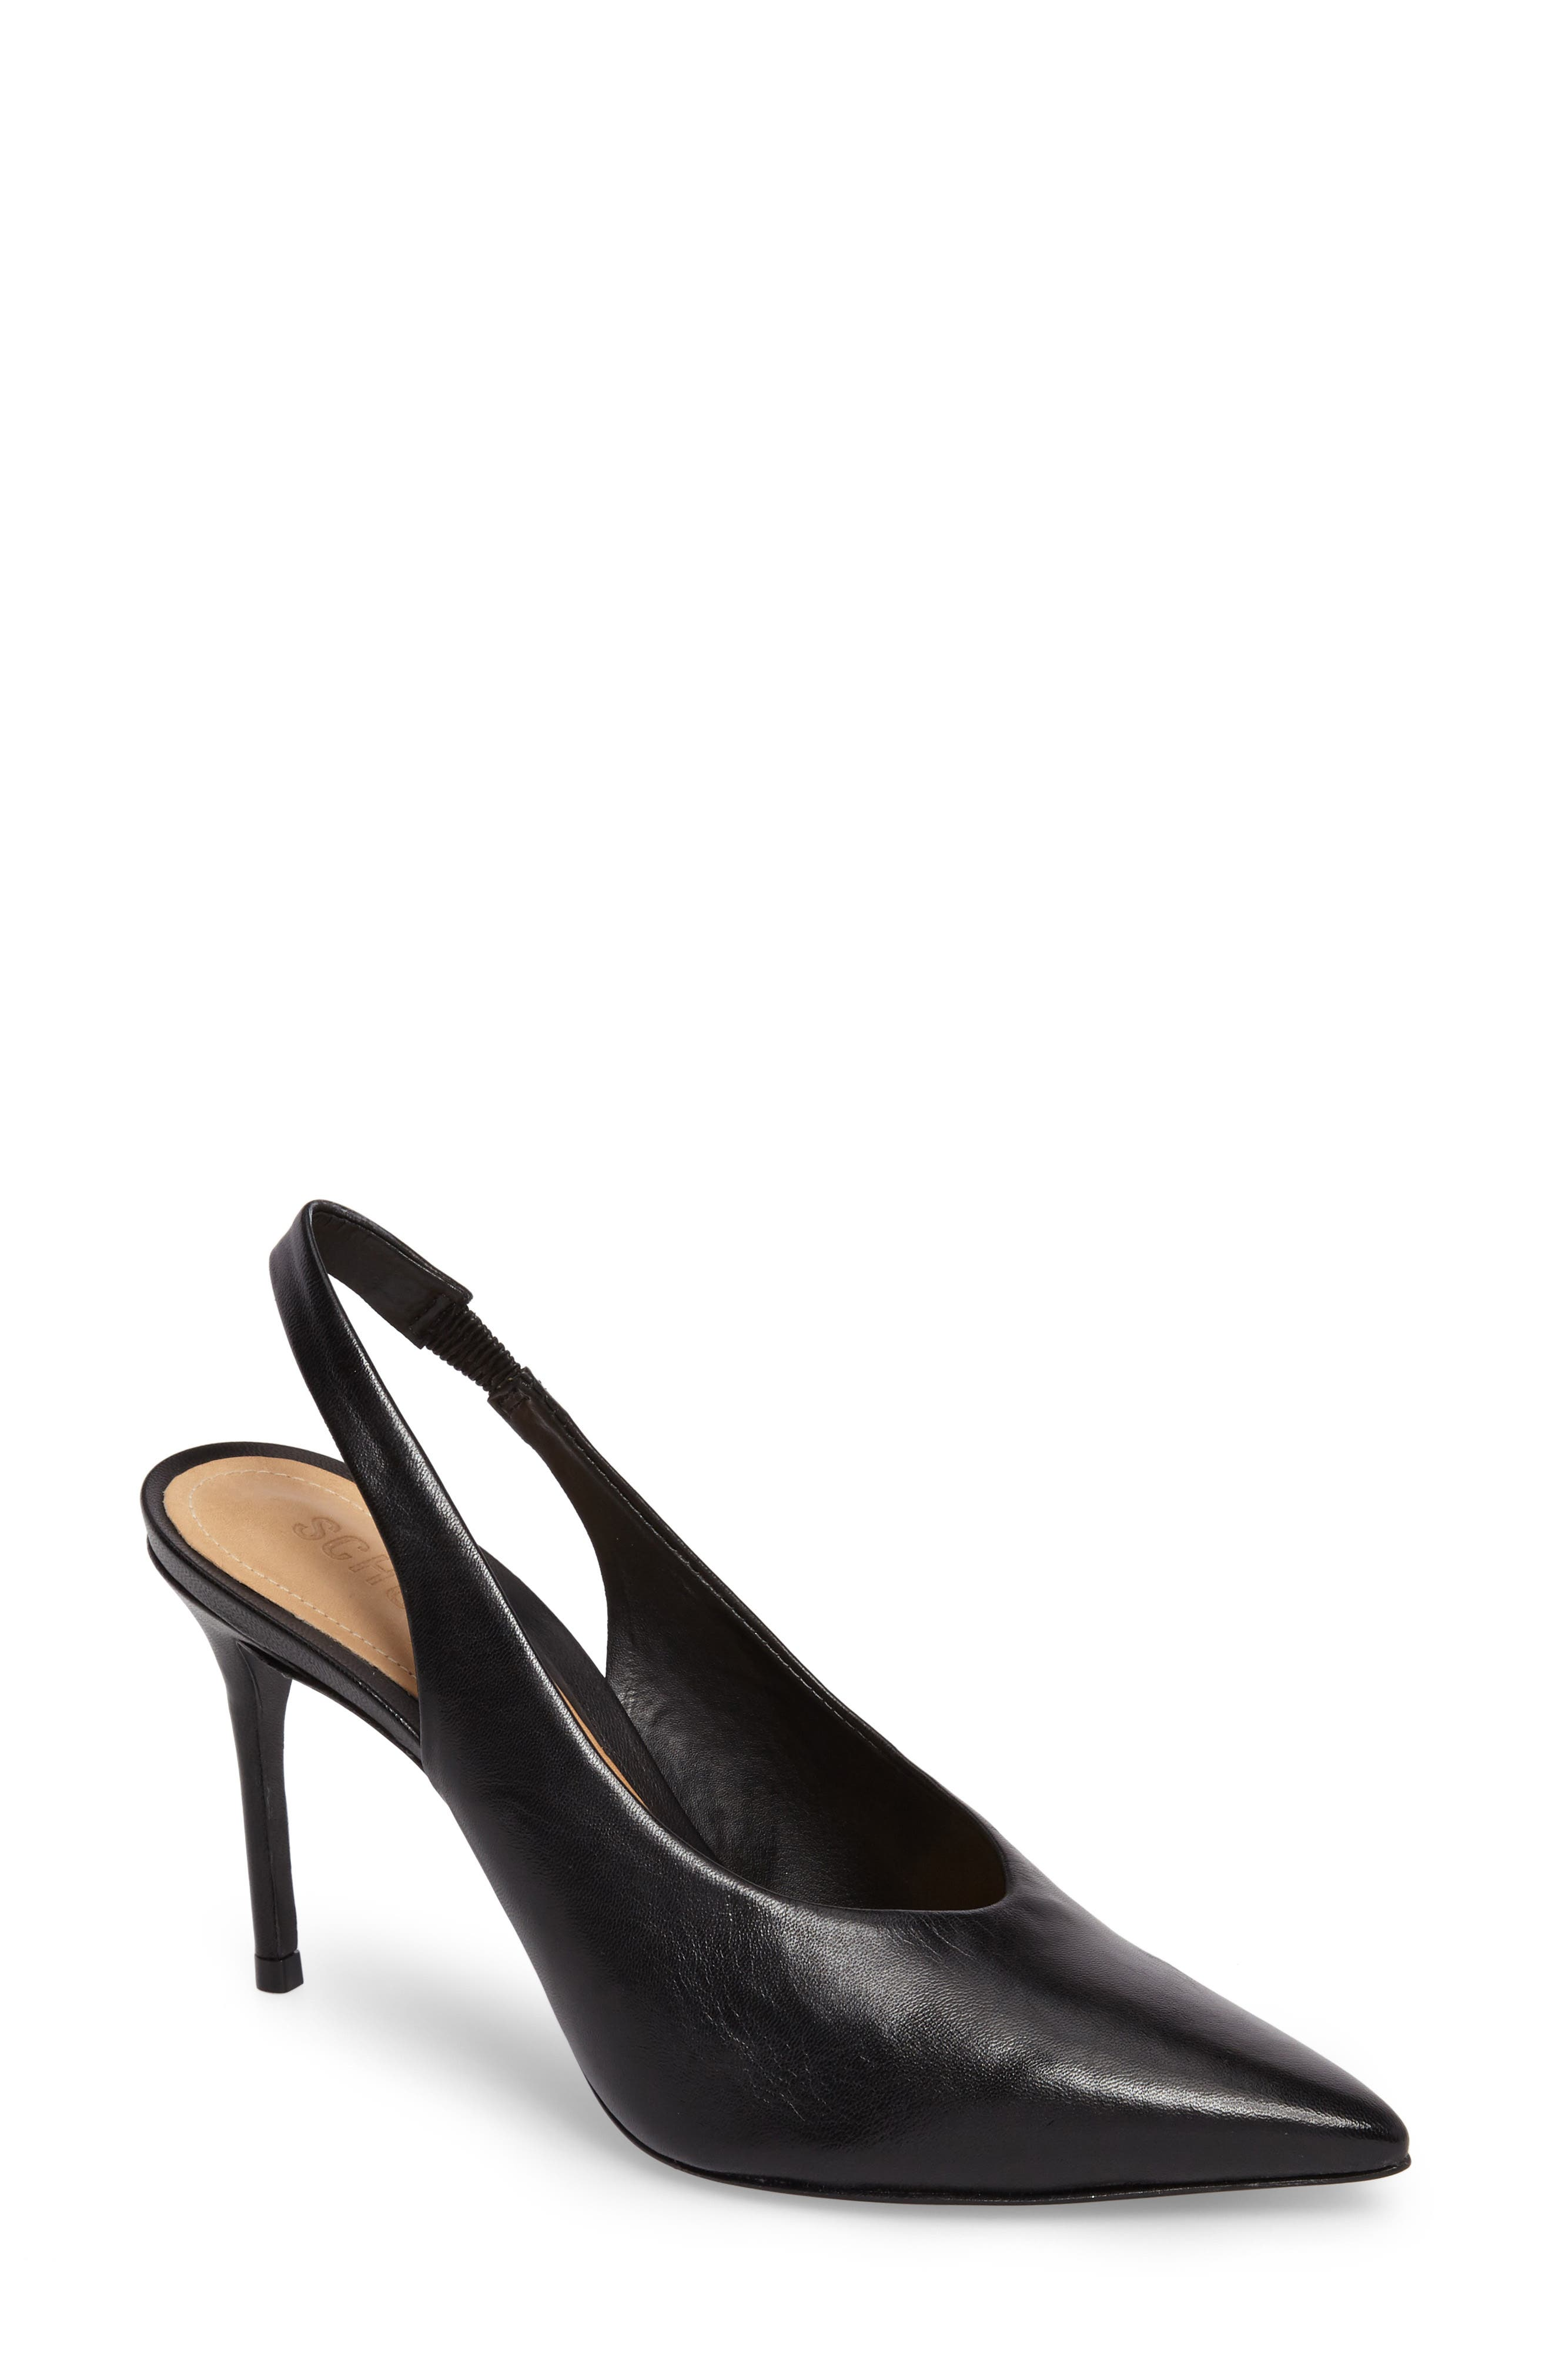 Phisalis Slingback Pump,                         Main,                         color, Black Mestico Leather